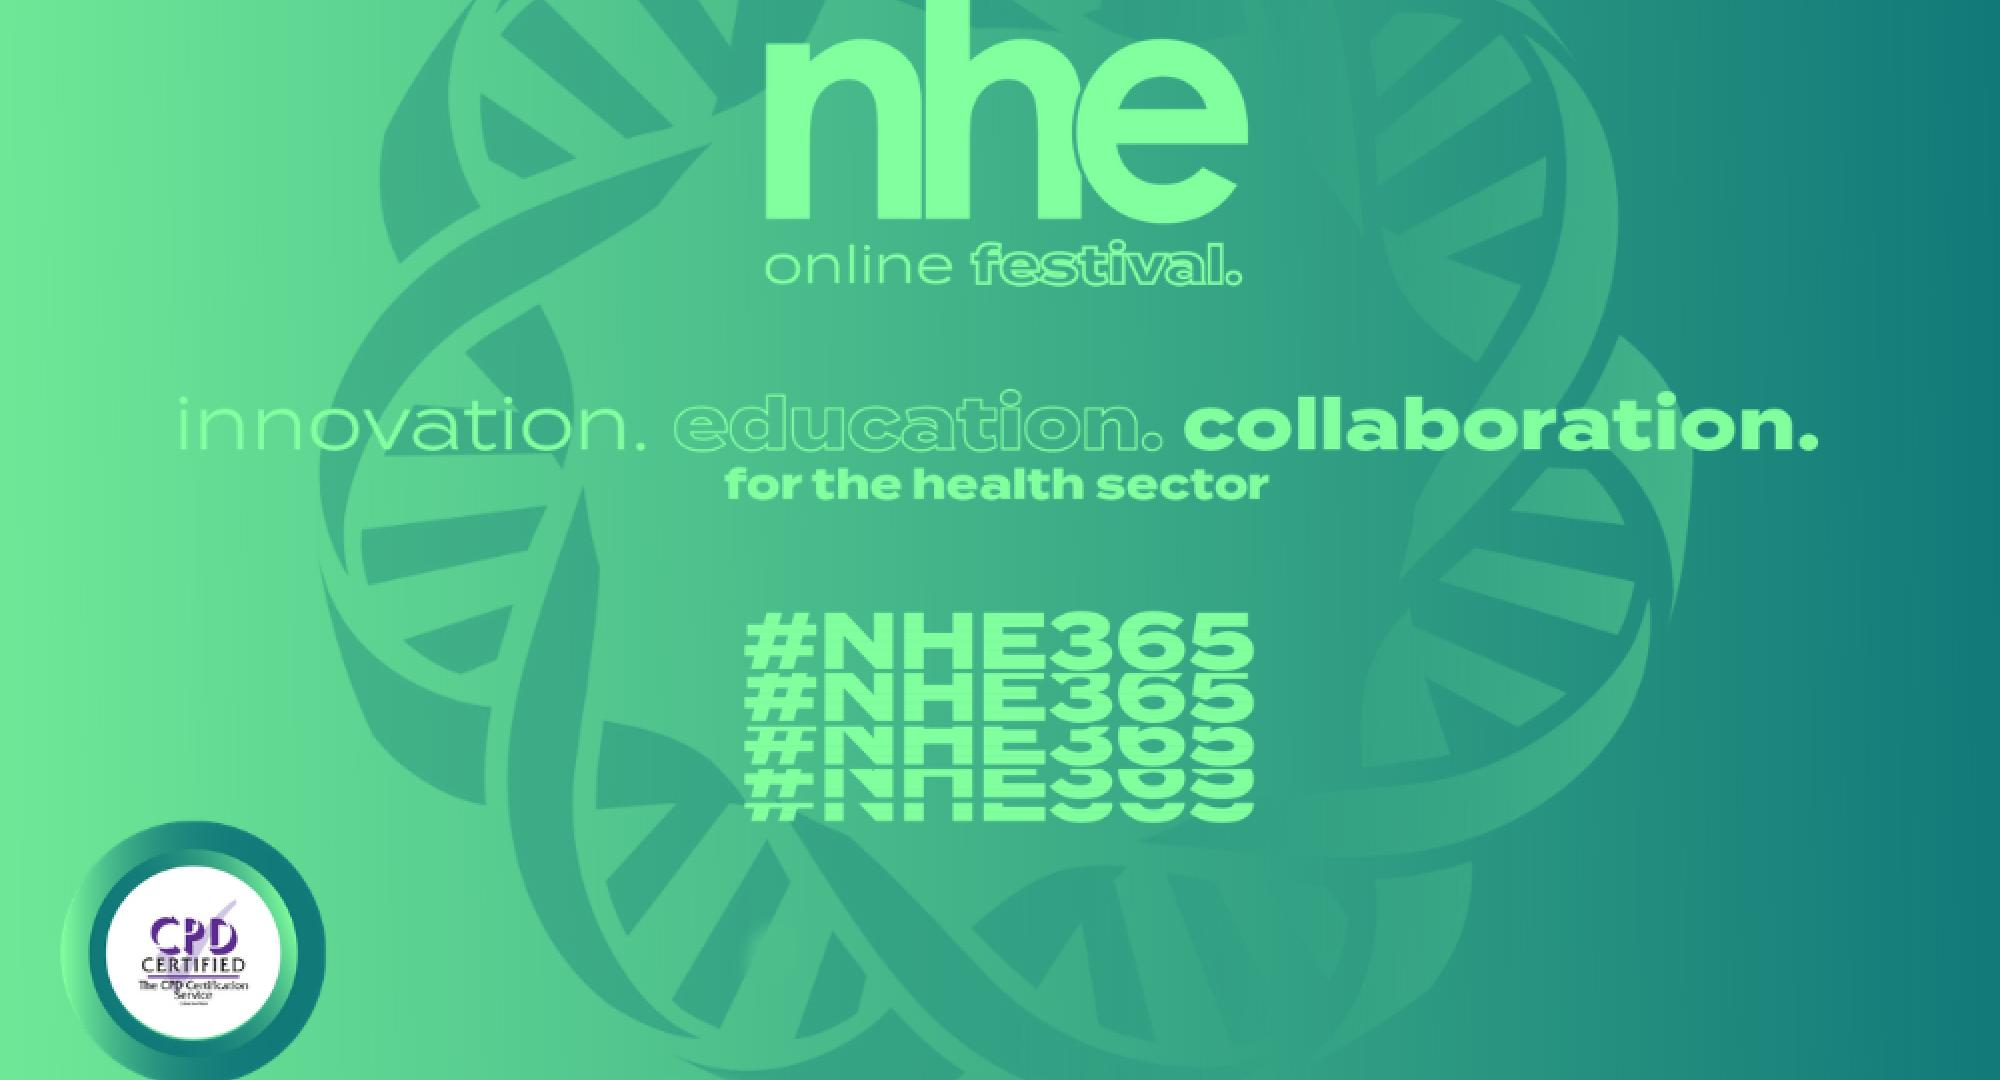 NHE365 Events Graphic